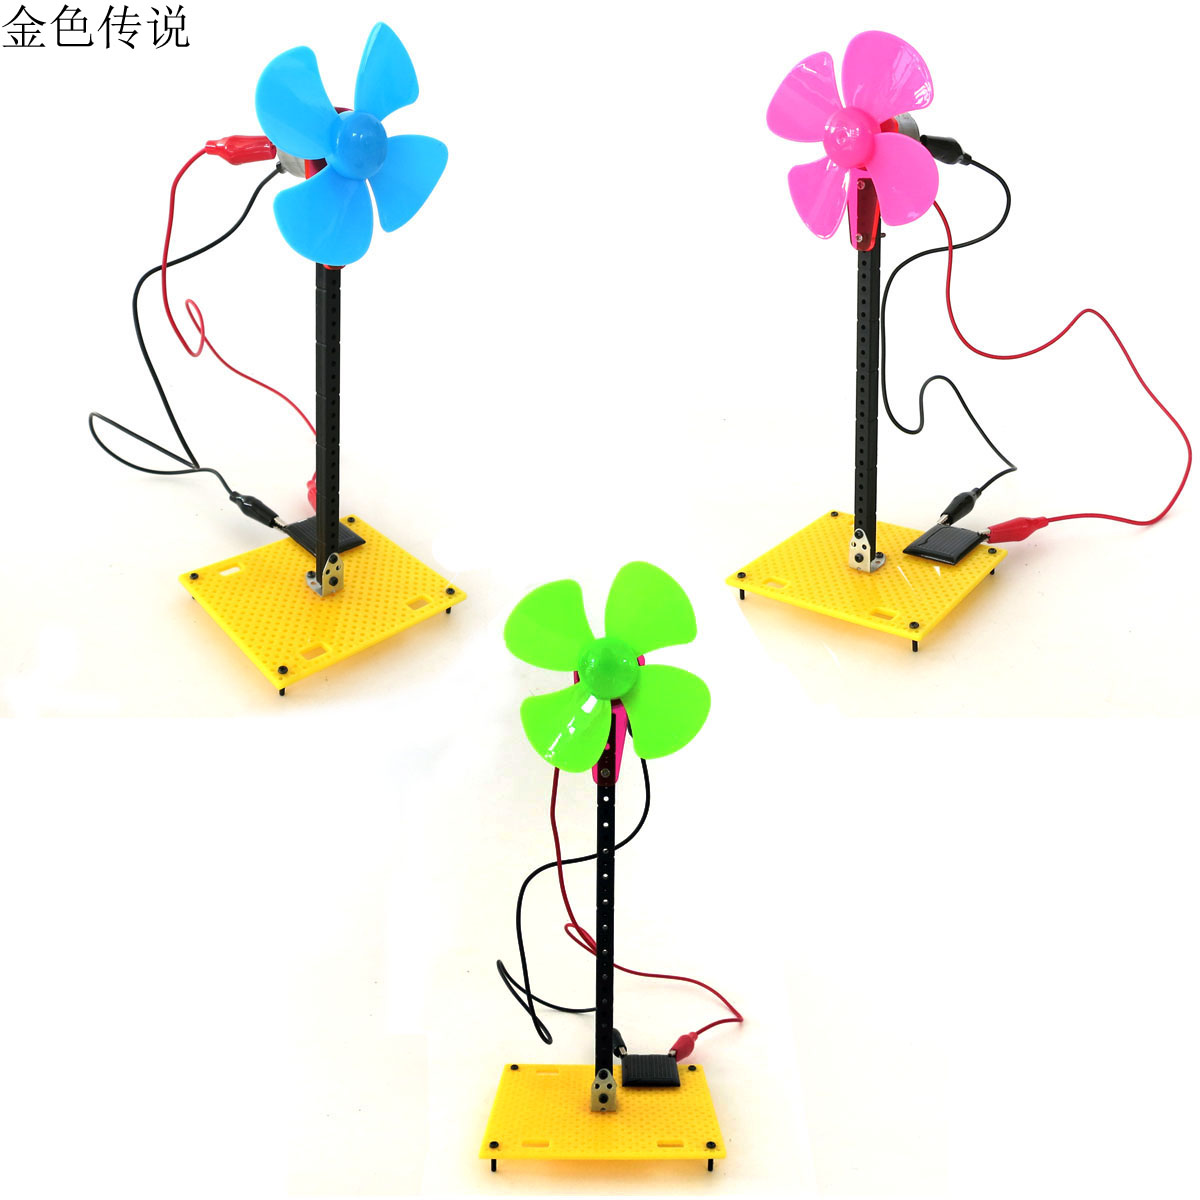 DIY Solar Energy Windmill Model Puzzle Popular Science Toys Educational Bricks 4WD Smart Robot Car Chassis RC Toy F17933/5 solar power cute wheel paddle boat model 2 green energy intelligent diy toy